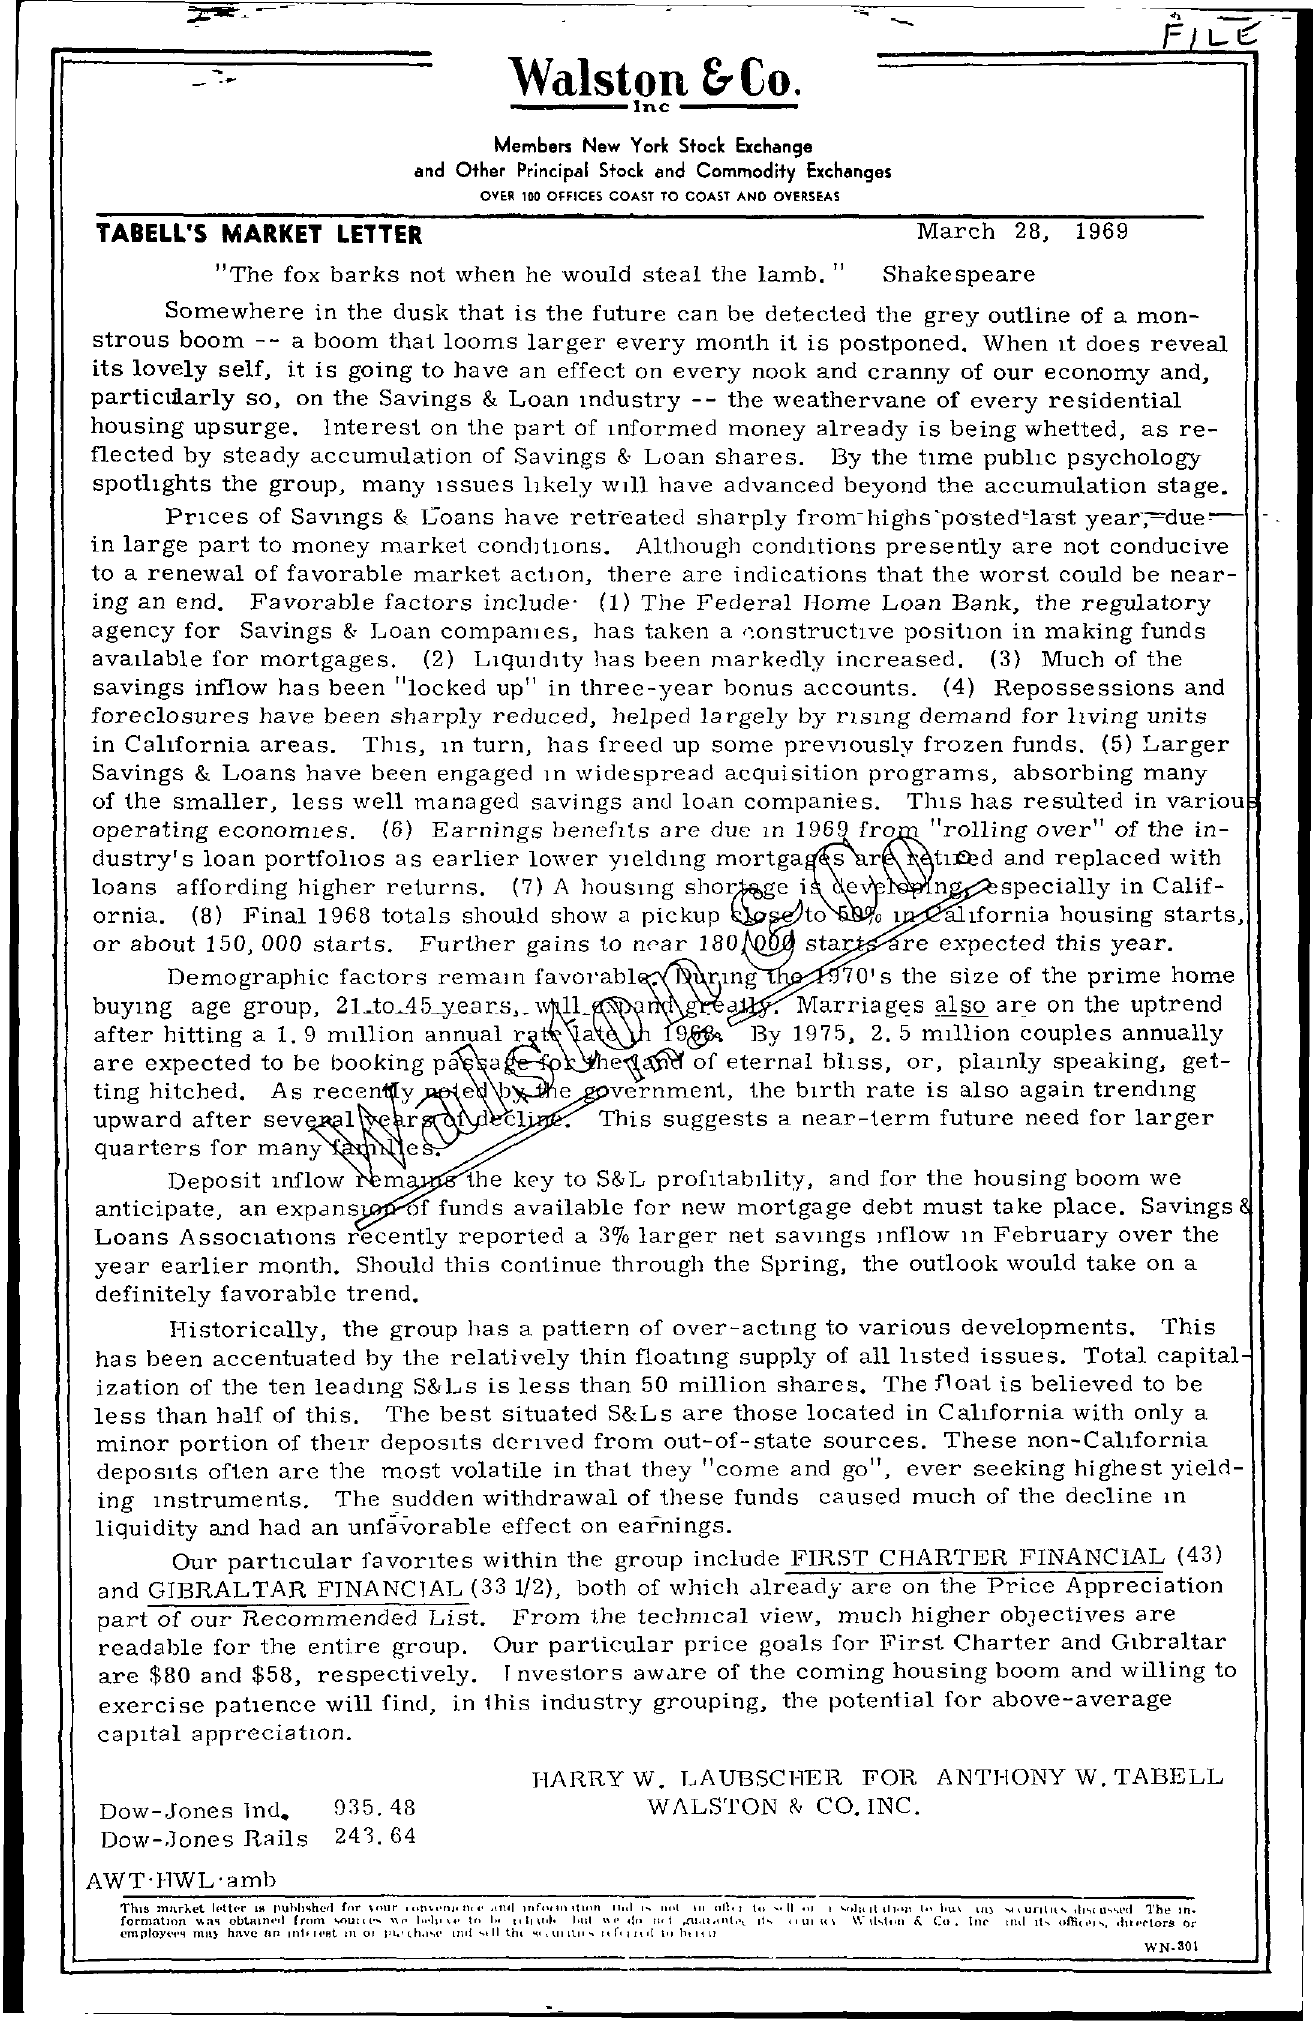 Tabell's Market Letter - March 28, 1969